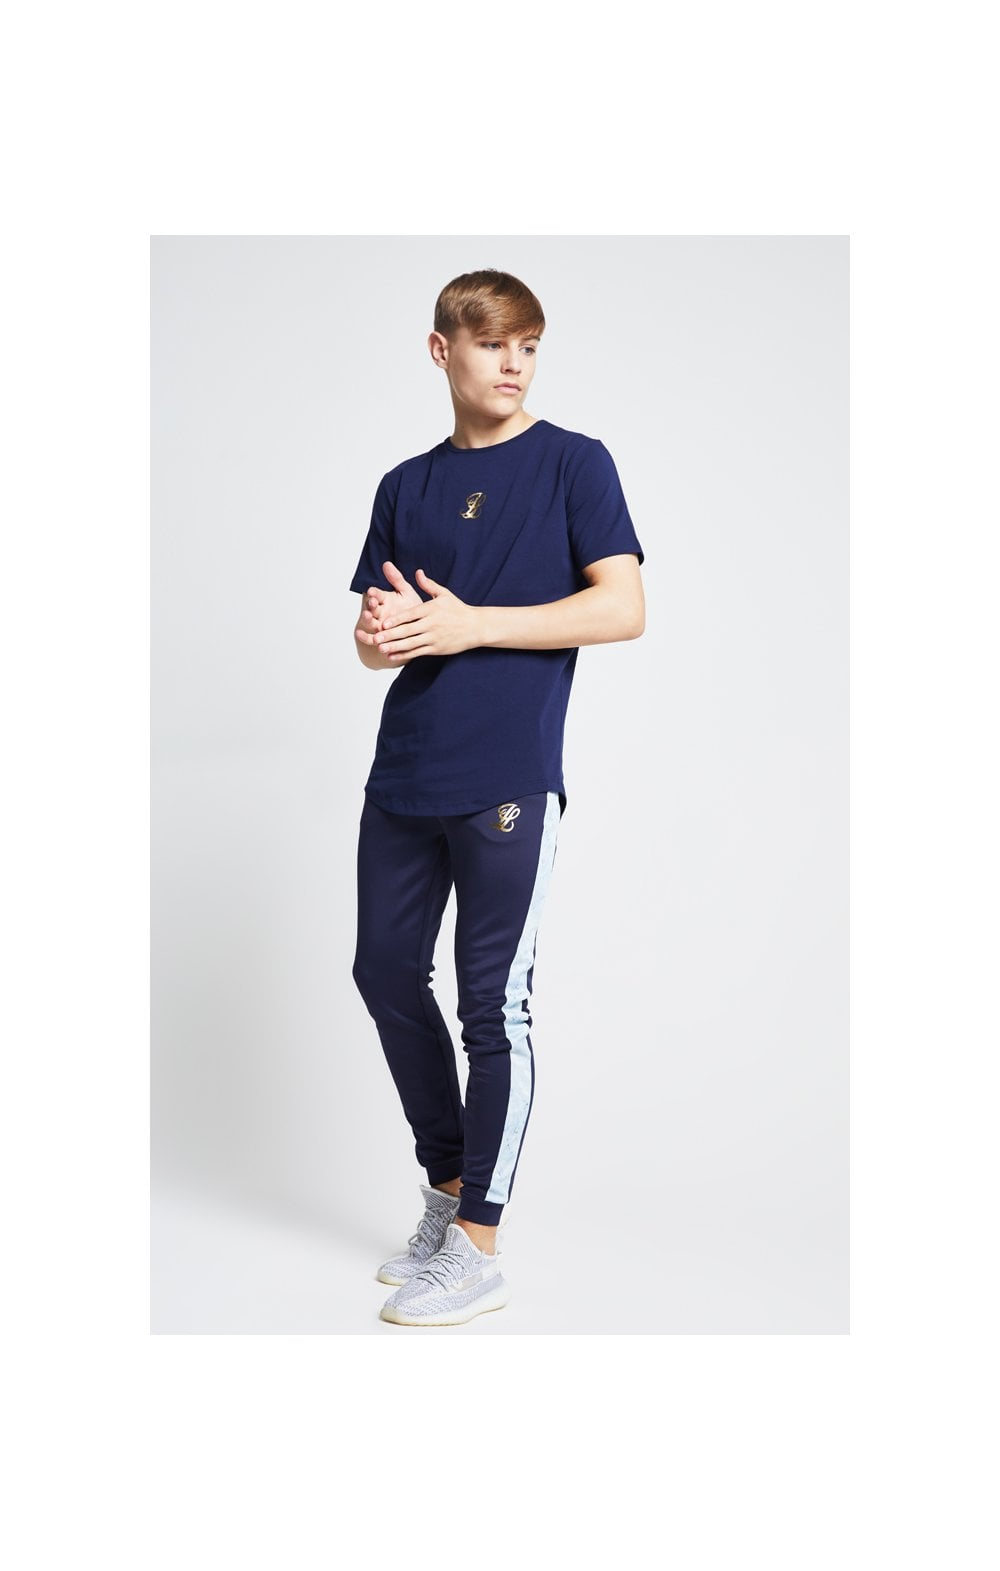 Illusive London Marble Racer Back Tee – Navy & Marble (5)